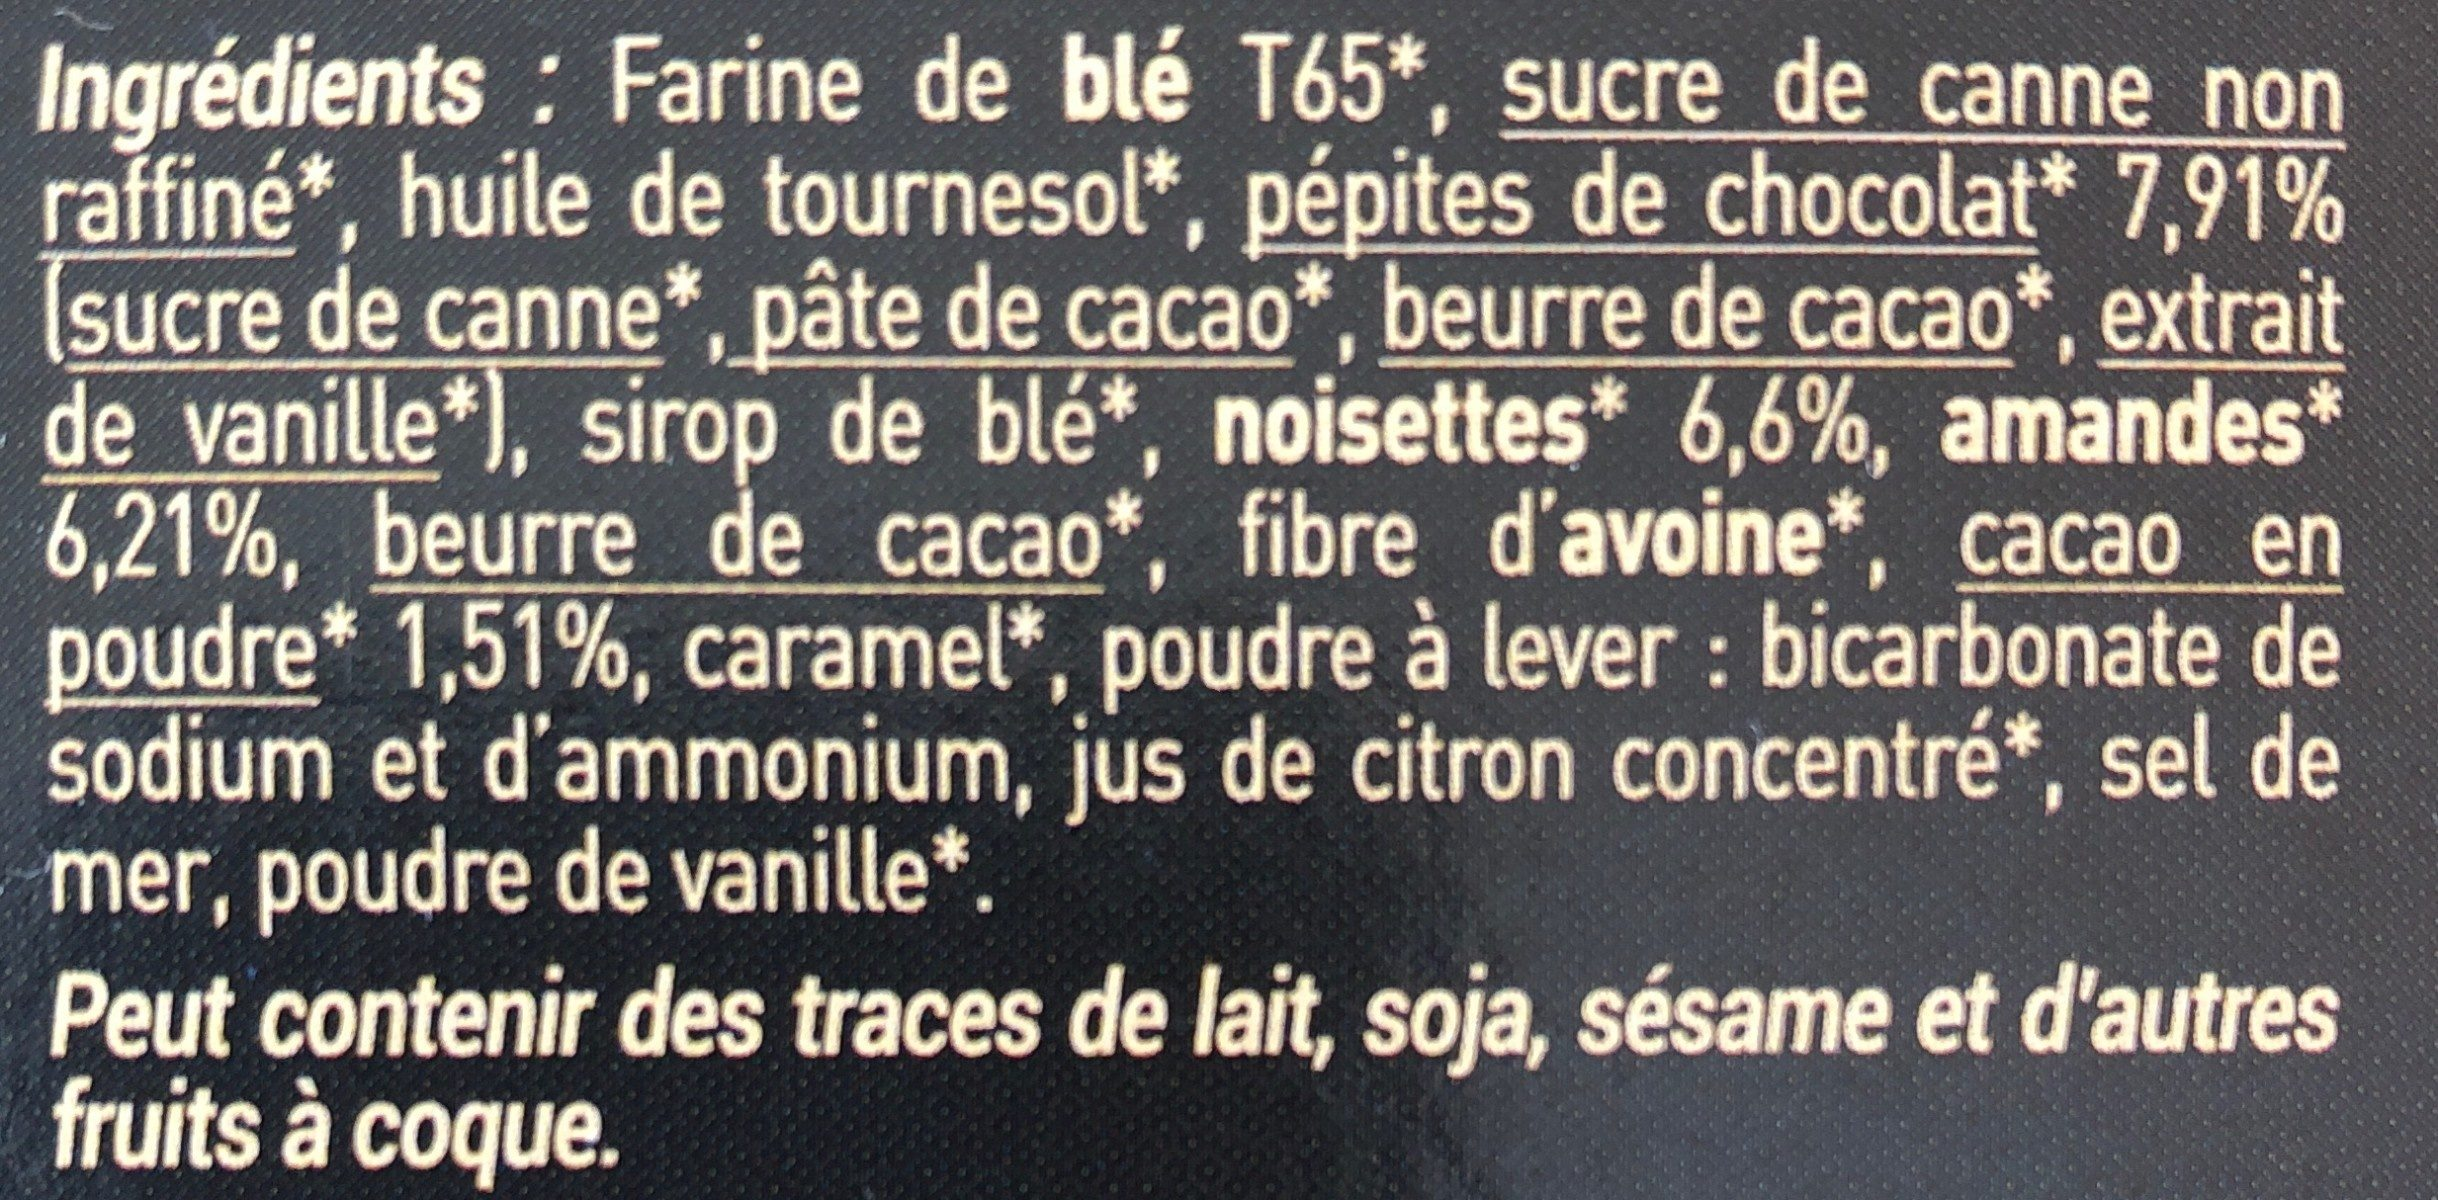 Fourrés praliné - Ingredients